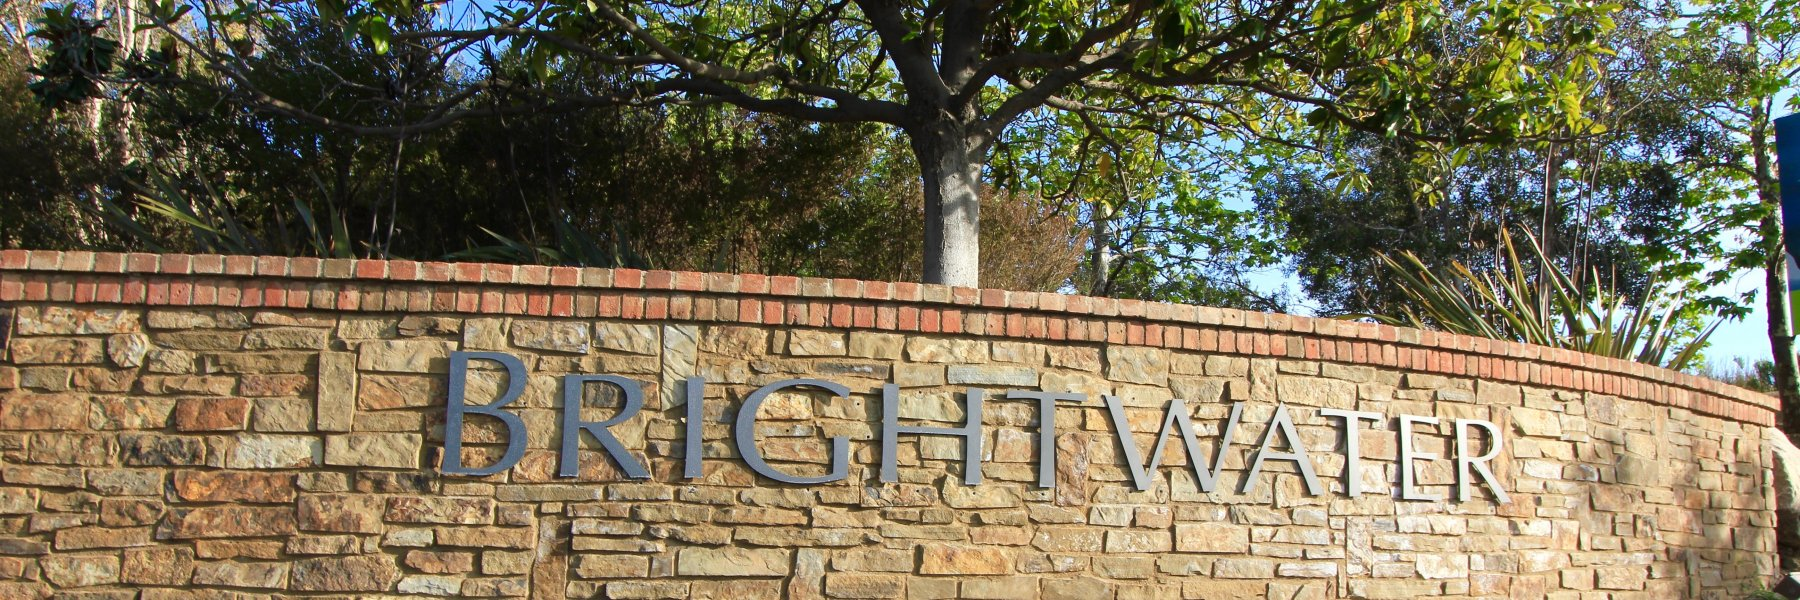 Brightwater is a community of homes in Huntington Beach California